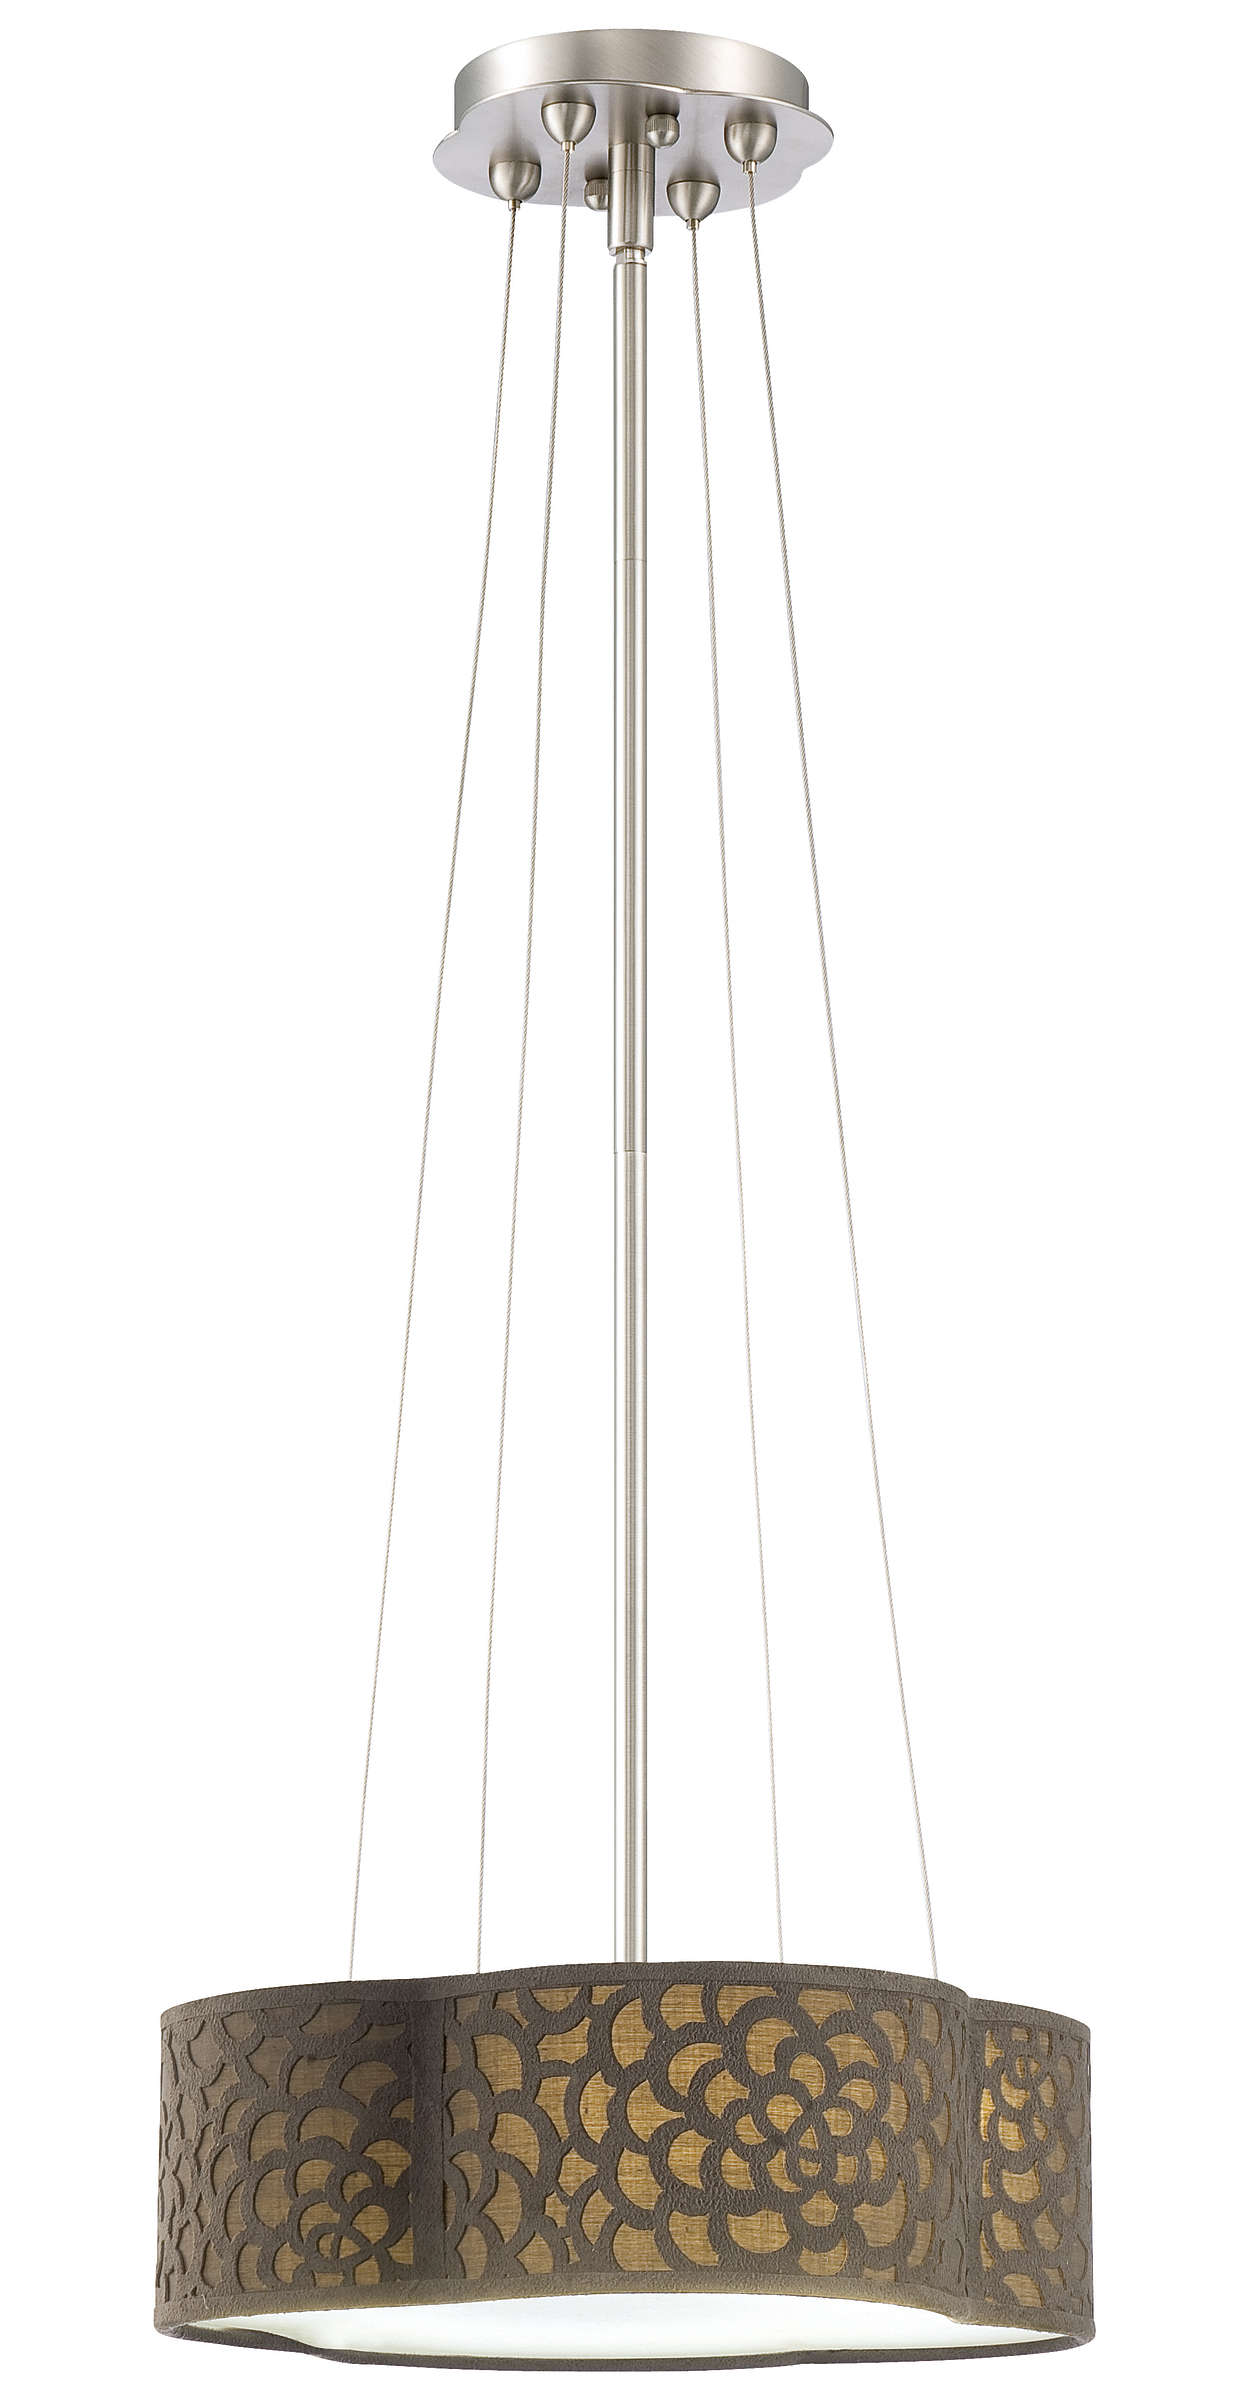 Noe 2-light Pendant in Satin Nickel finish